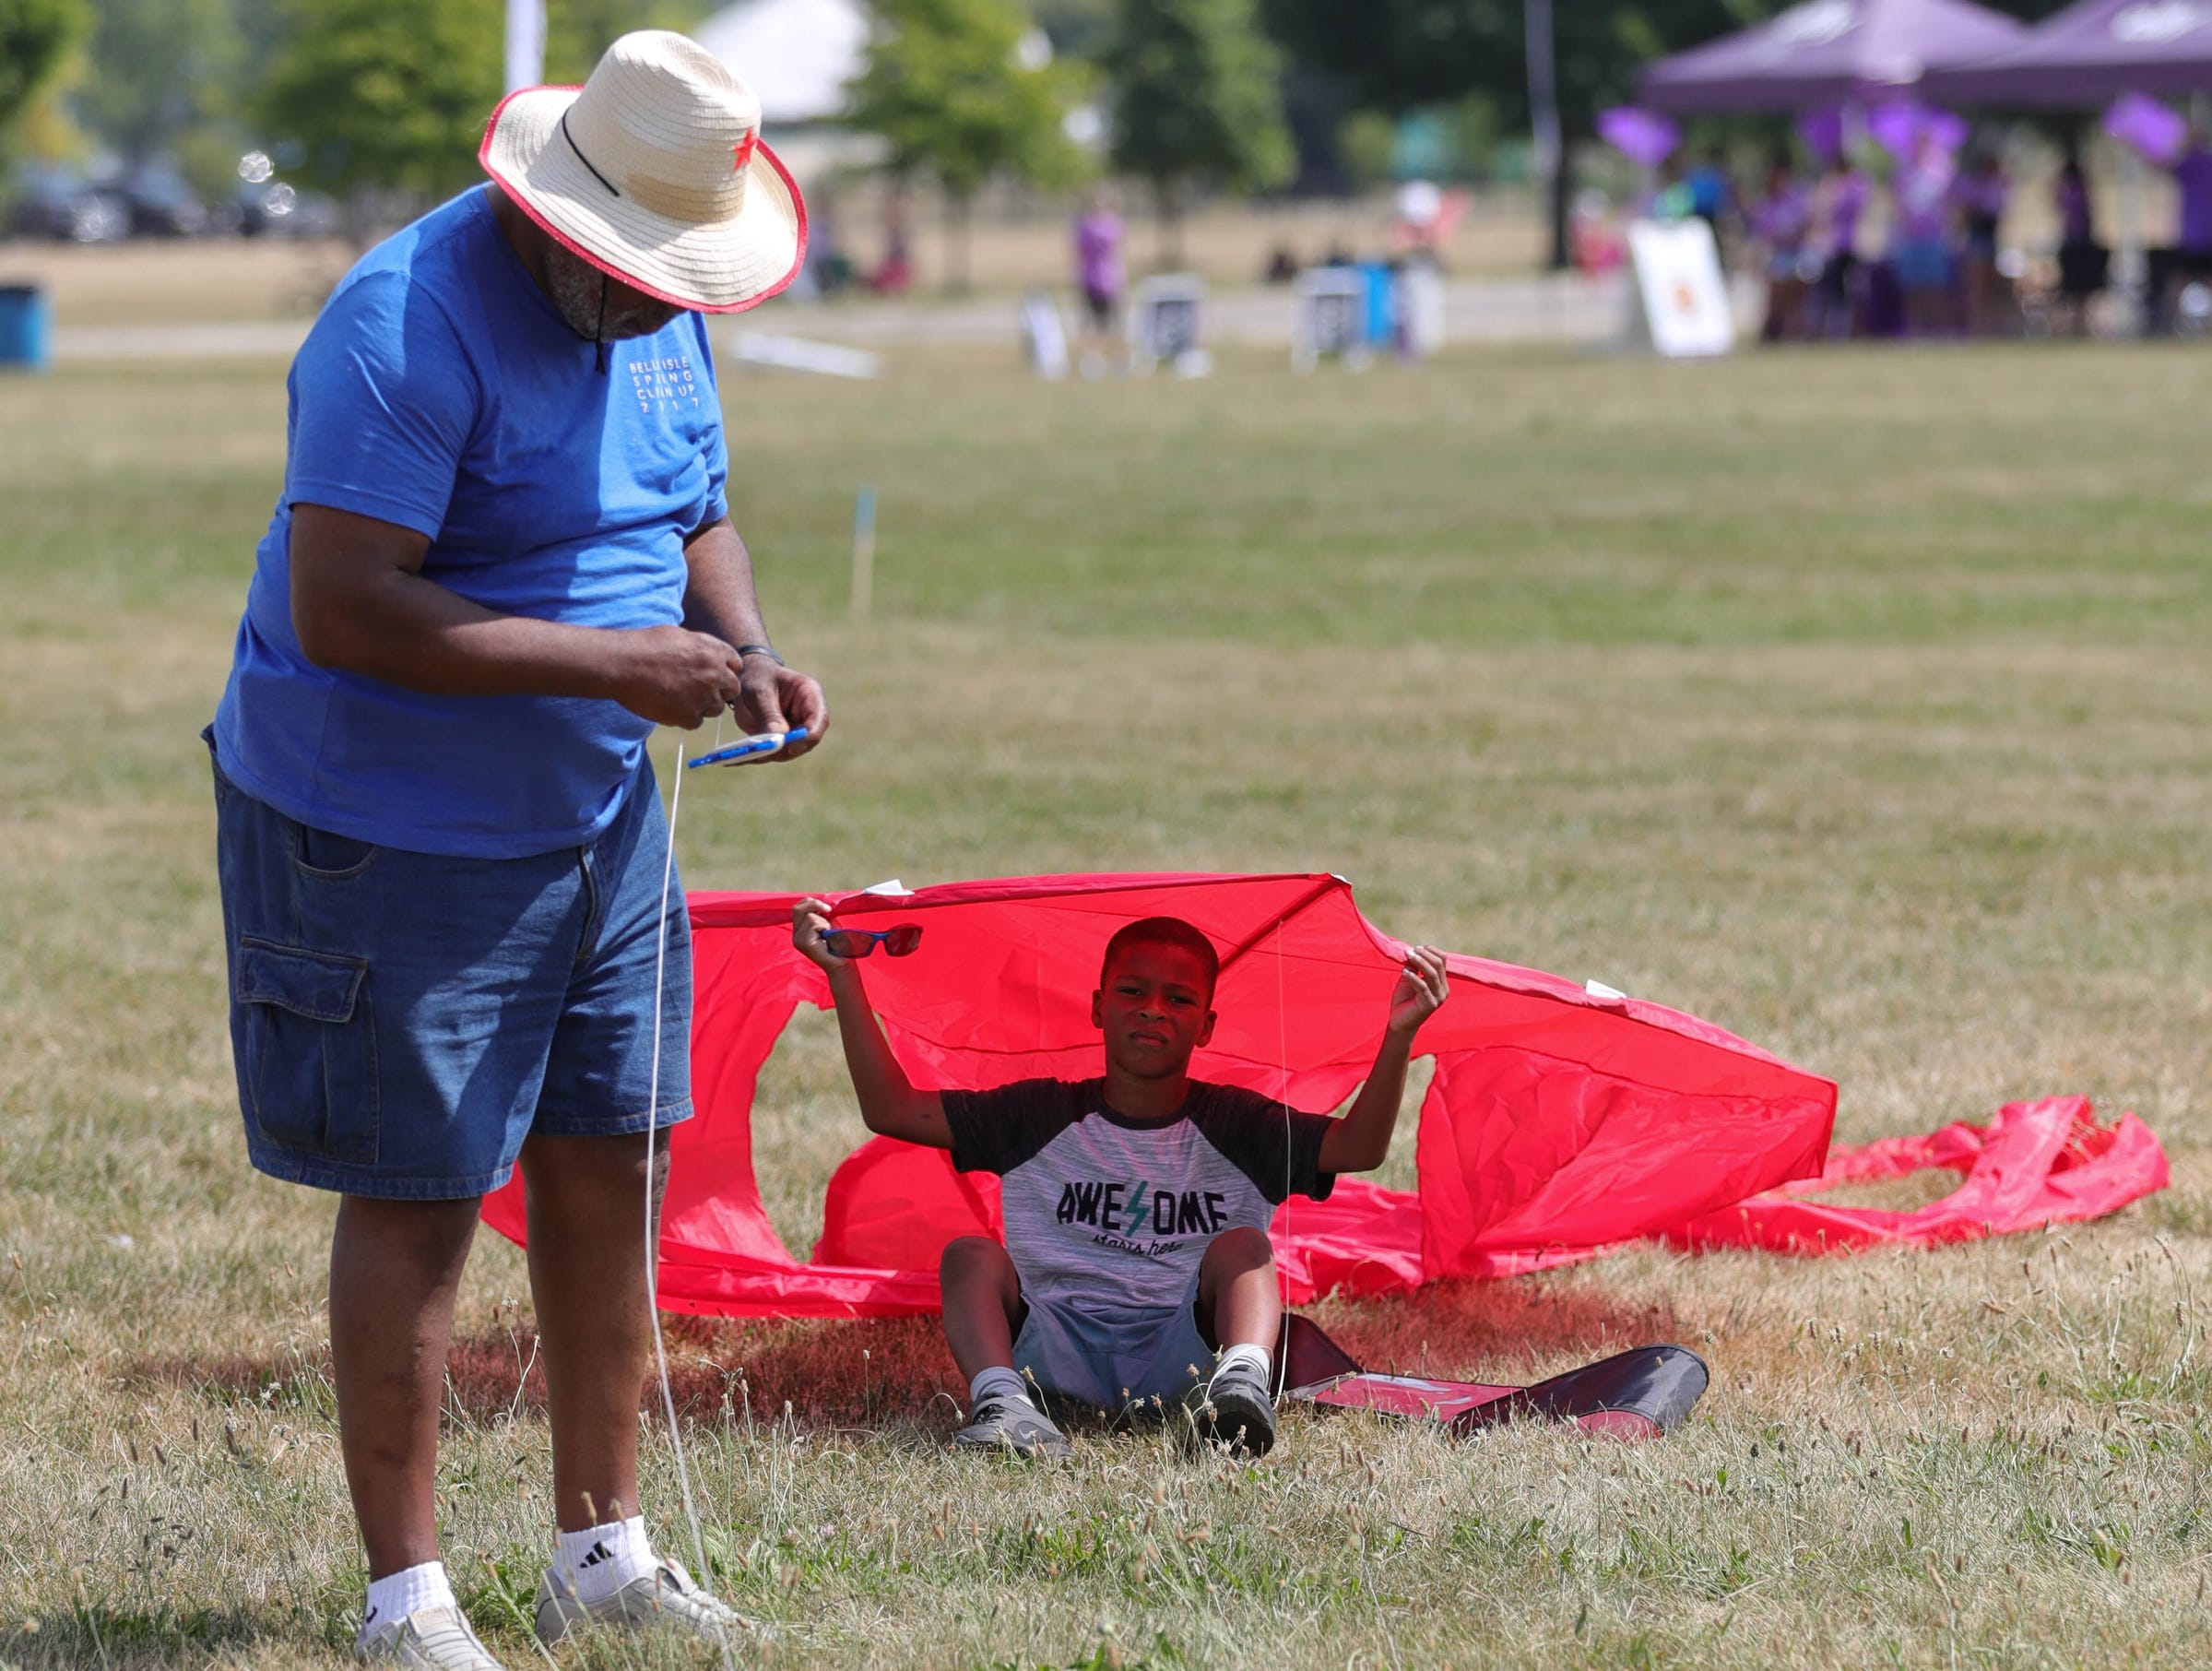 Ethan Vinson and his grandson Ethan Vinson, 6, work on their kite during the Detroit Kite Festival on Belle Isle Sunday, July 15, 2018. Kite enthusiasts from all over Metro Detroit enjoyed the free festivities which included on-site kite making with the Detroit Institute of Arts and professional kite flyers.